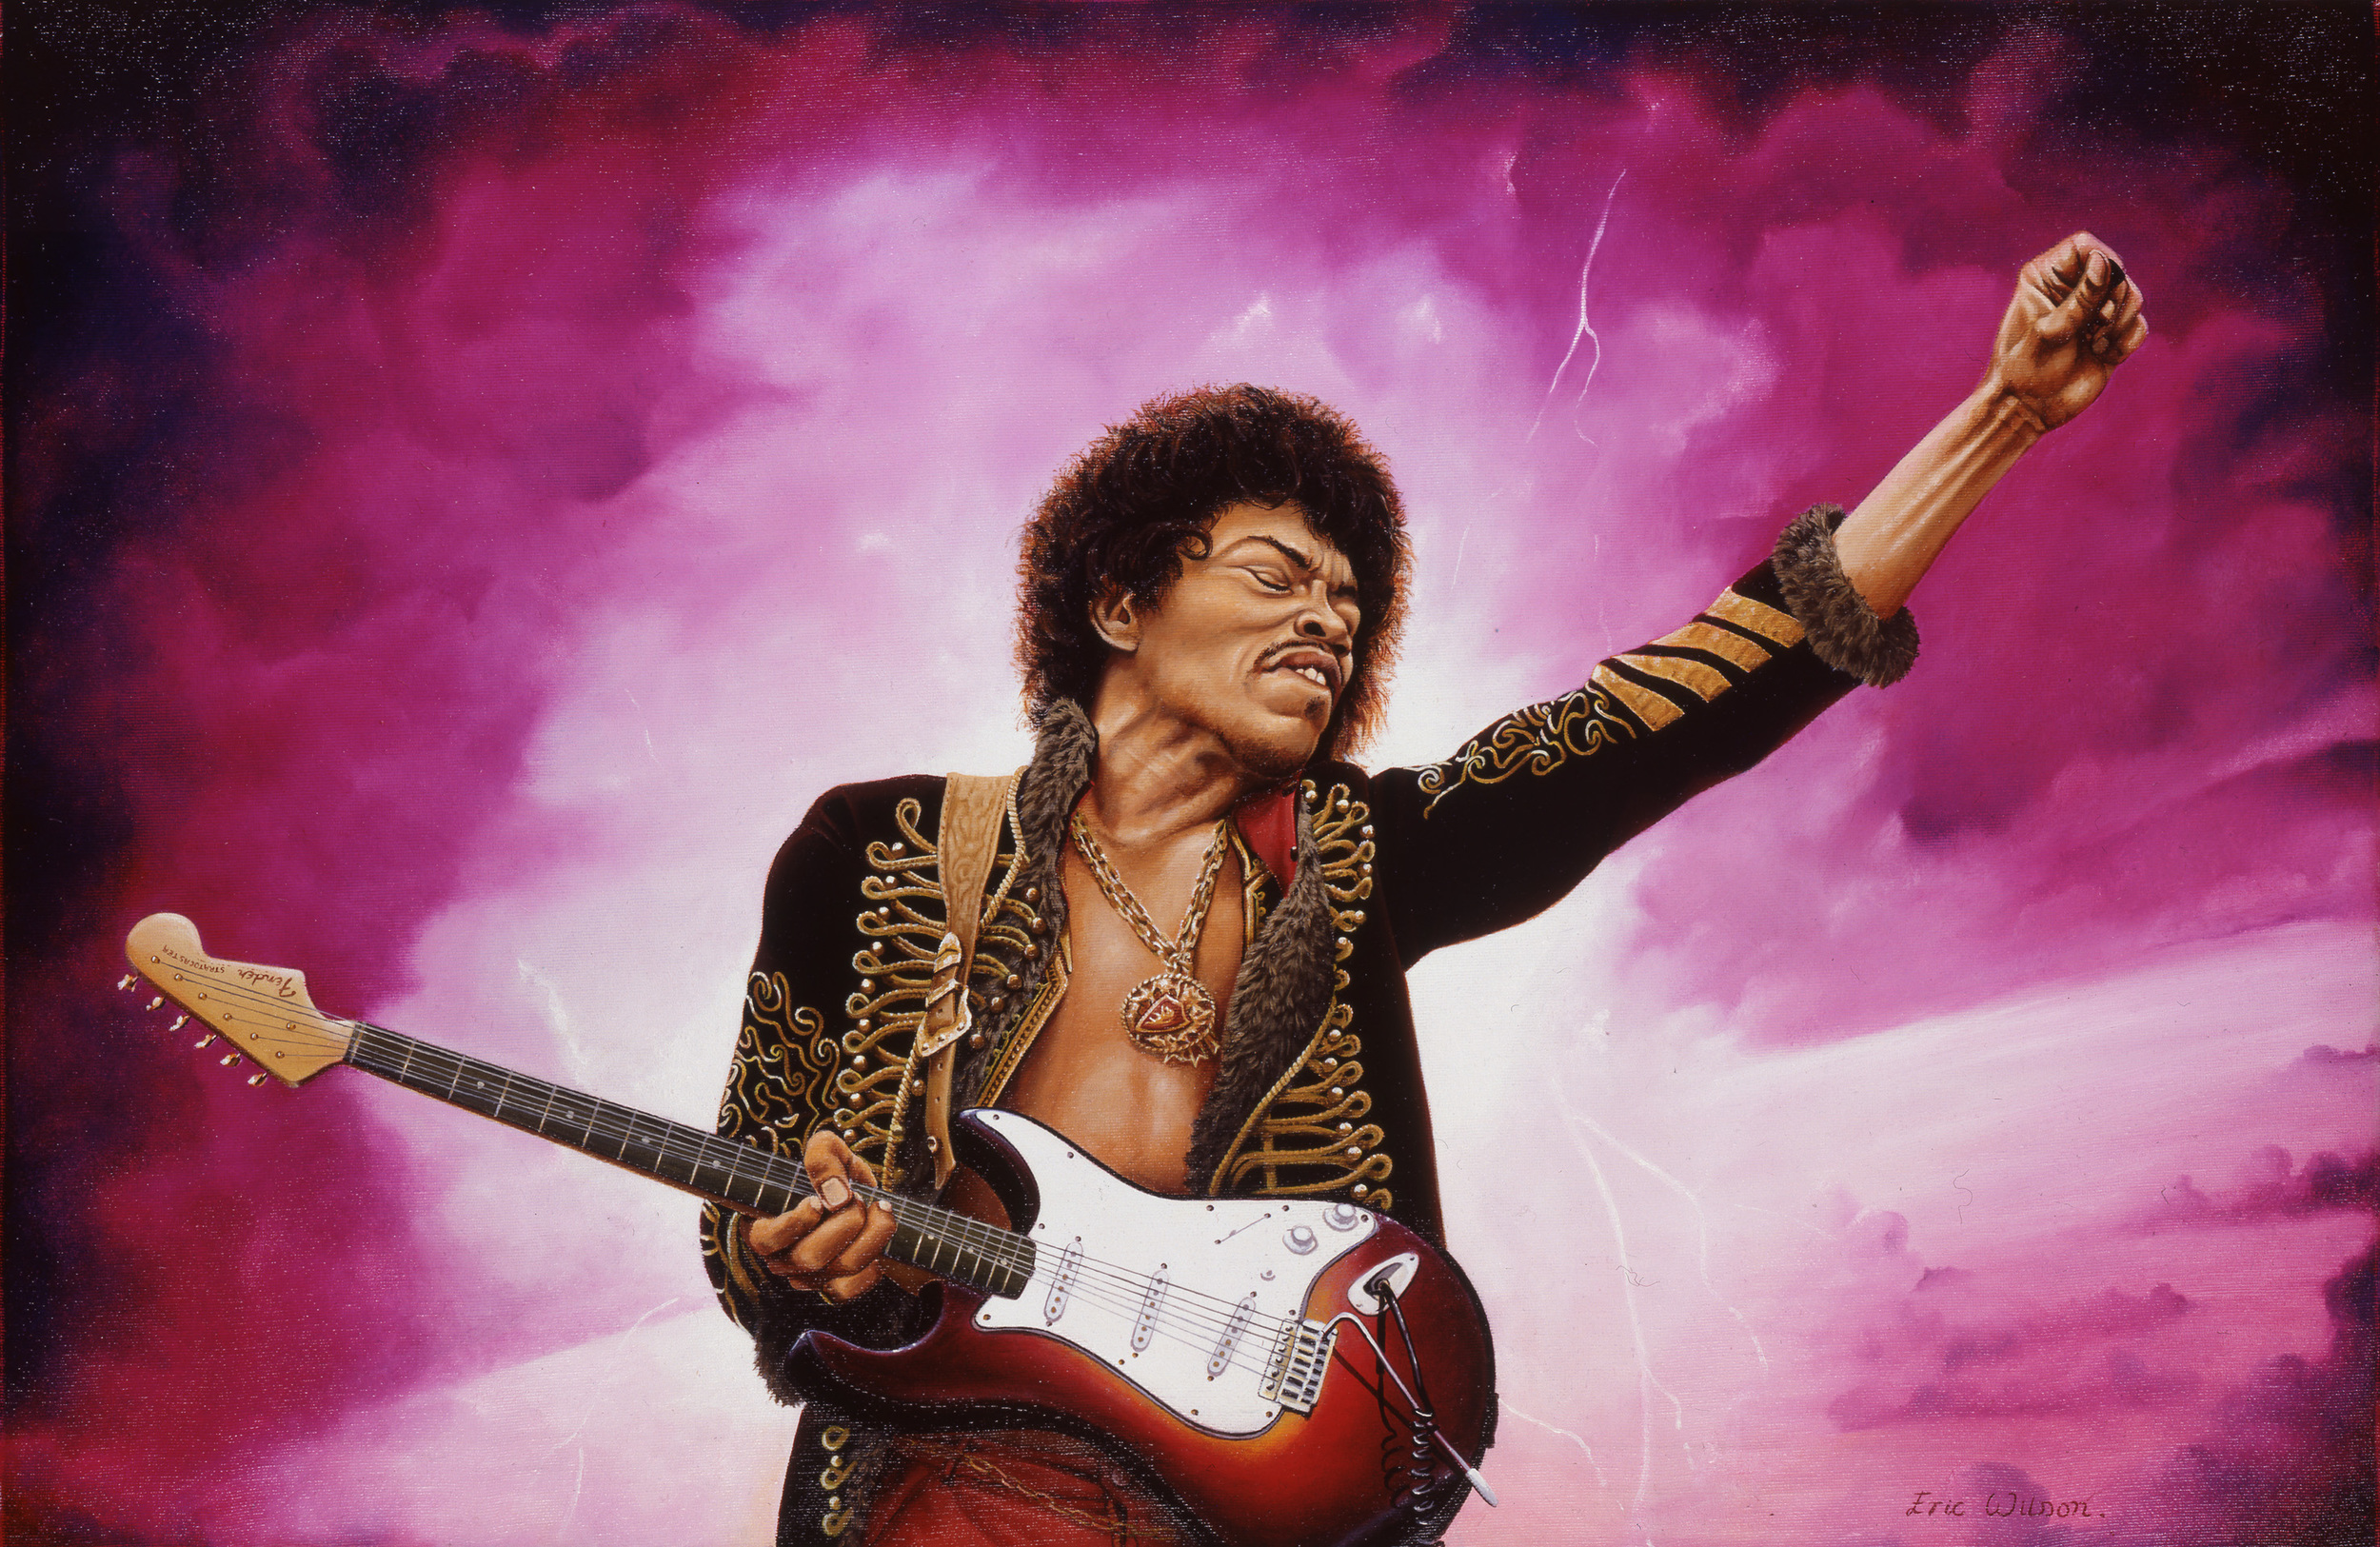 James Marshall Hendrix